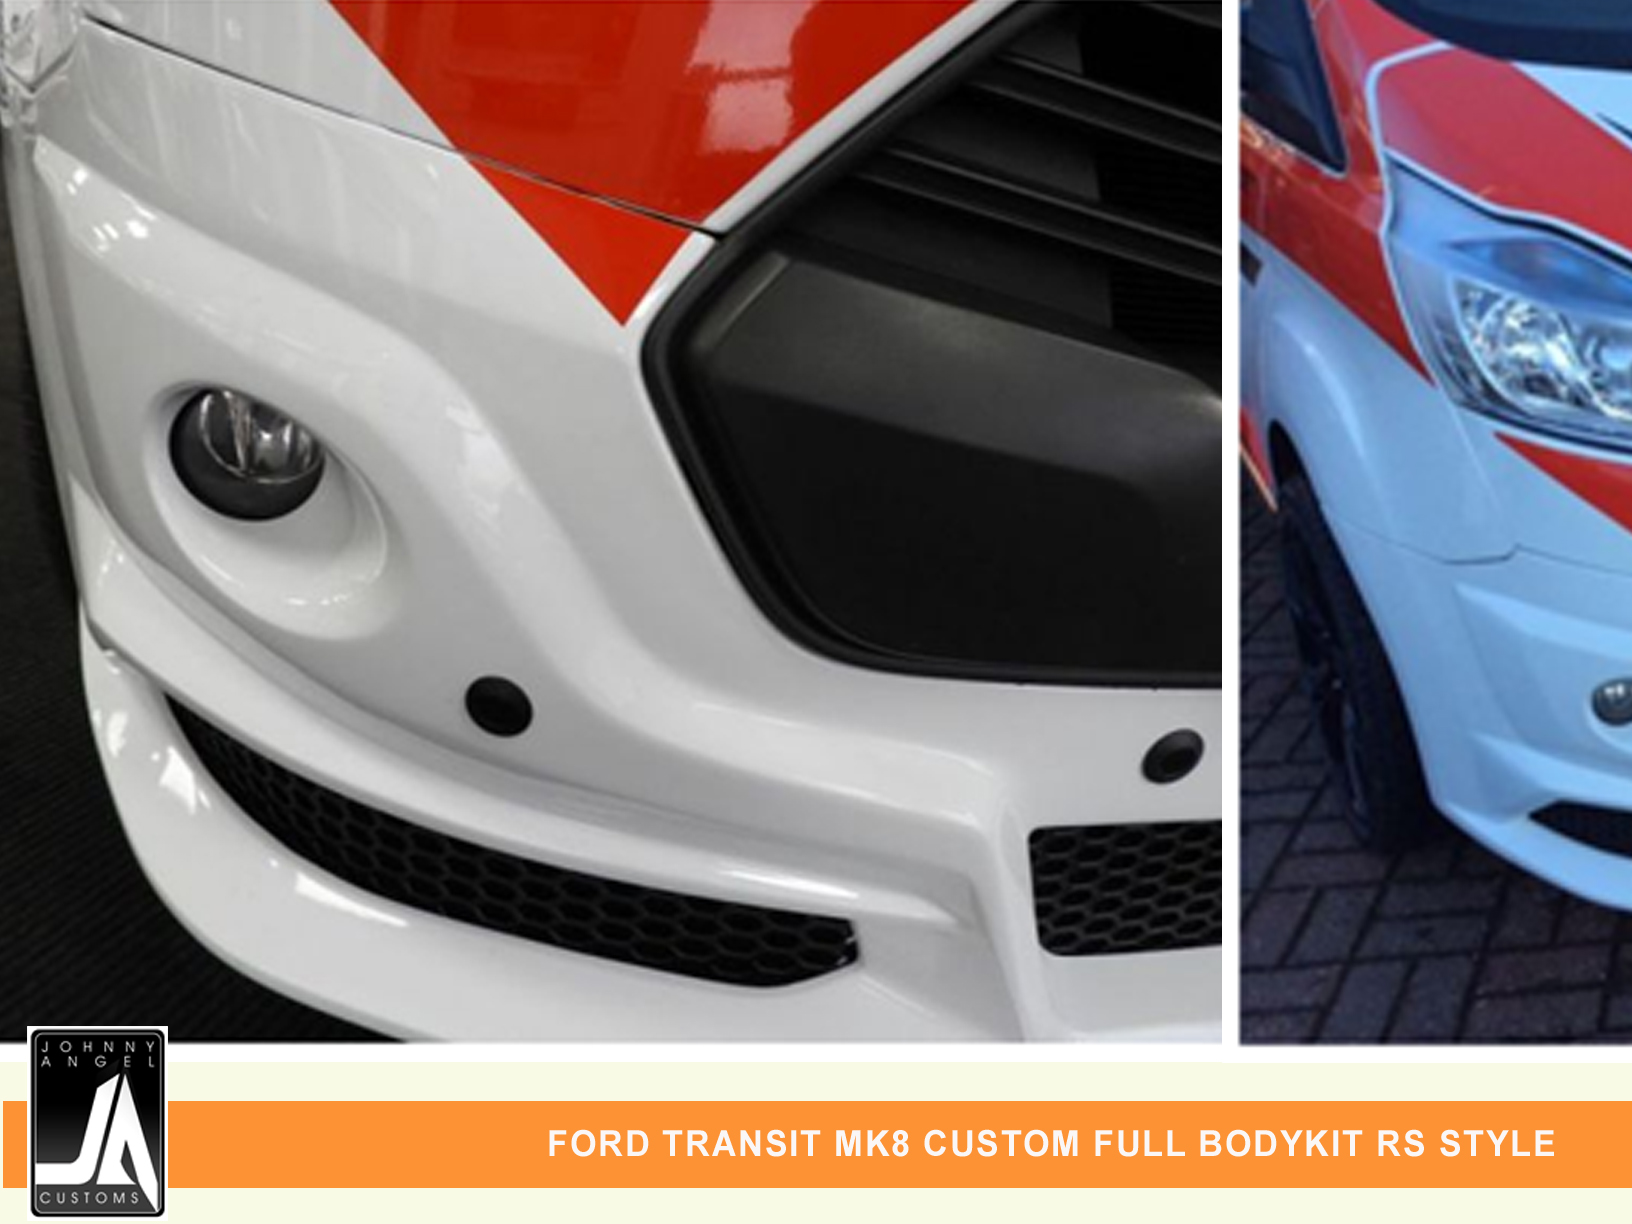 FORD TRANSIT MK8 CUSTOM FULL BODYKIT RS STYLE  By Johnny Angel Customs PIC 4